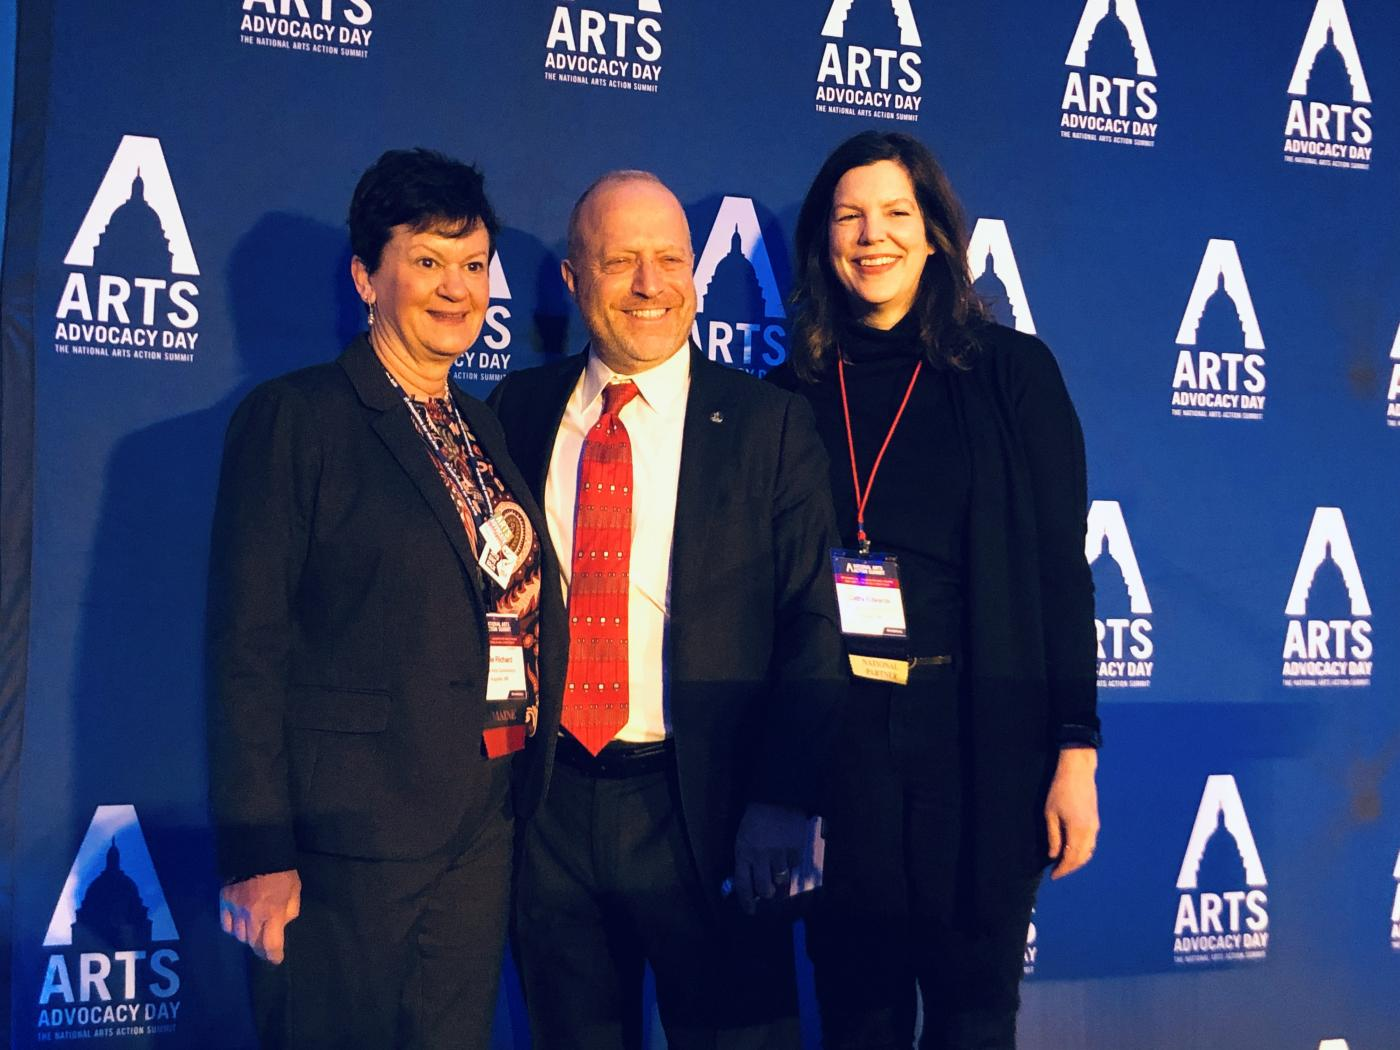 Three people pose in front of a banner with the Arts Advocacy Day logo